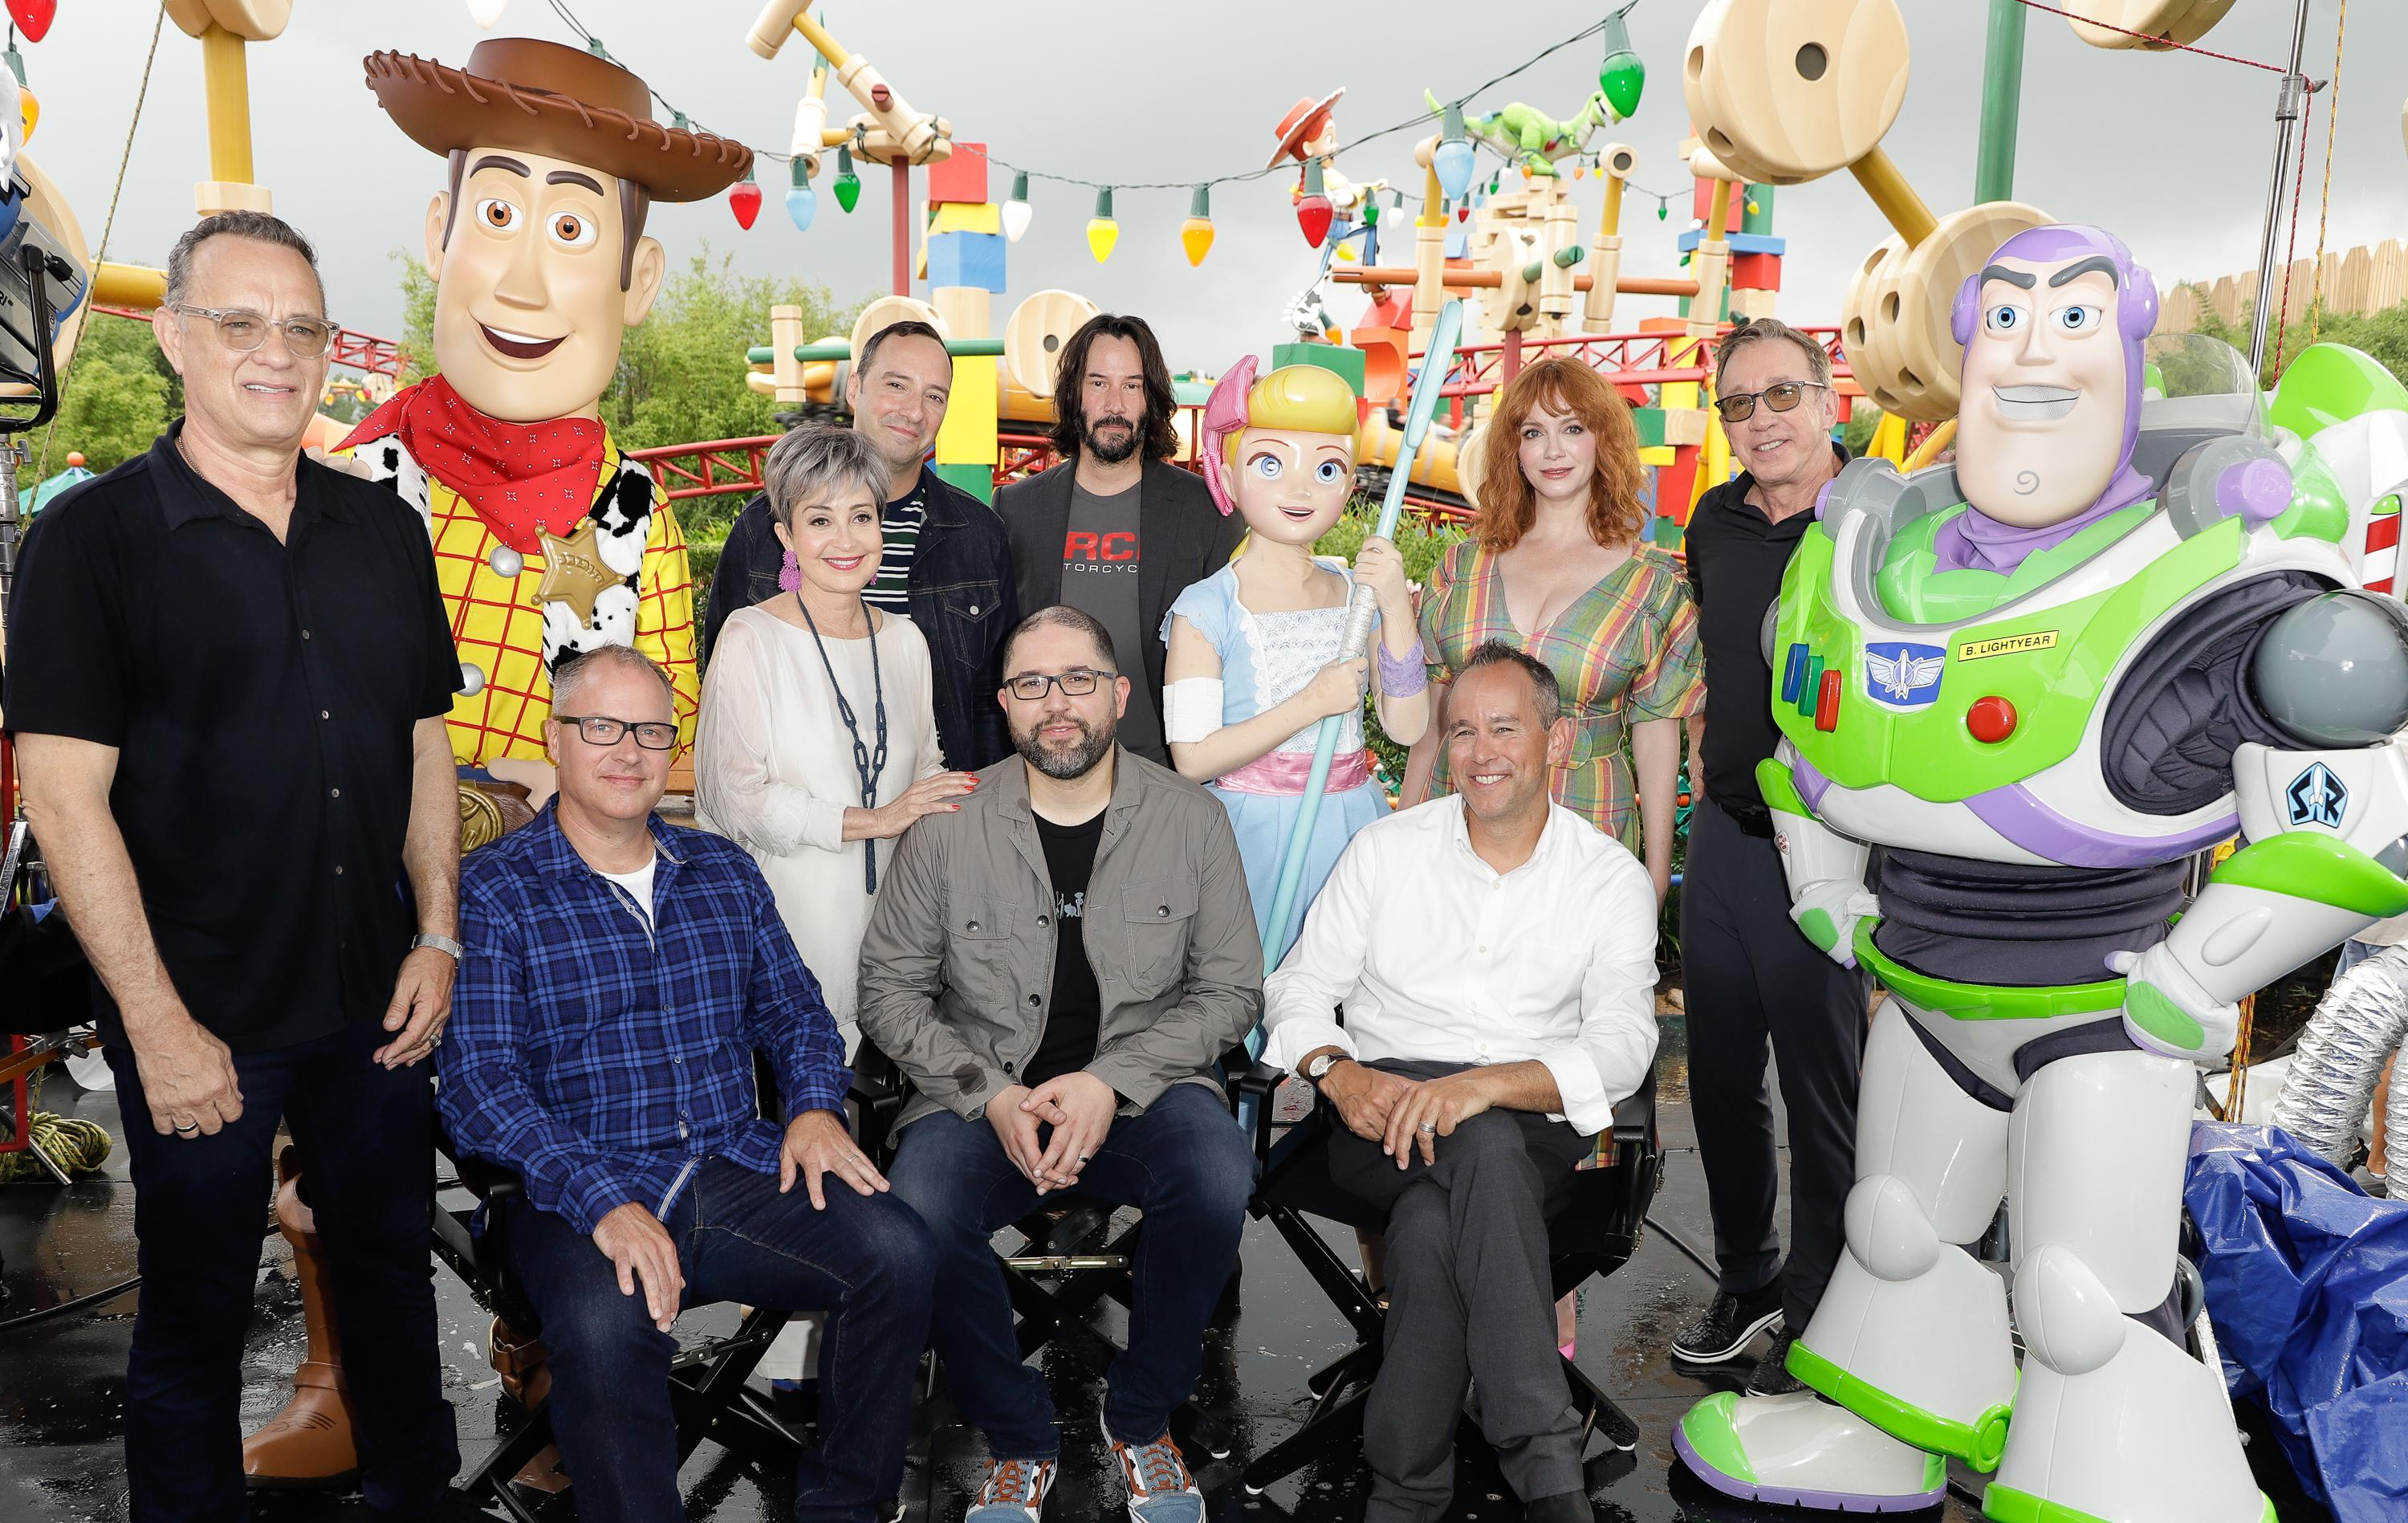 ORLANDO, FLORIDA - JUNE 08: Tom Hanks, Annie Potts, Tim Allen, Tony Hale, Christina Hendricks, Keanu Reeves, Mark Nielsen, Josh Cooley and Jonas Rivera visit Toy Story Land at Disney's Hollywood Studios on June 08, 2019 in Orlando, Florida. (Photo by John Parra/Getty Images for Disney)